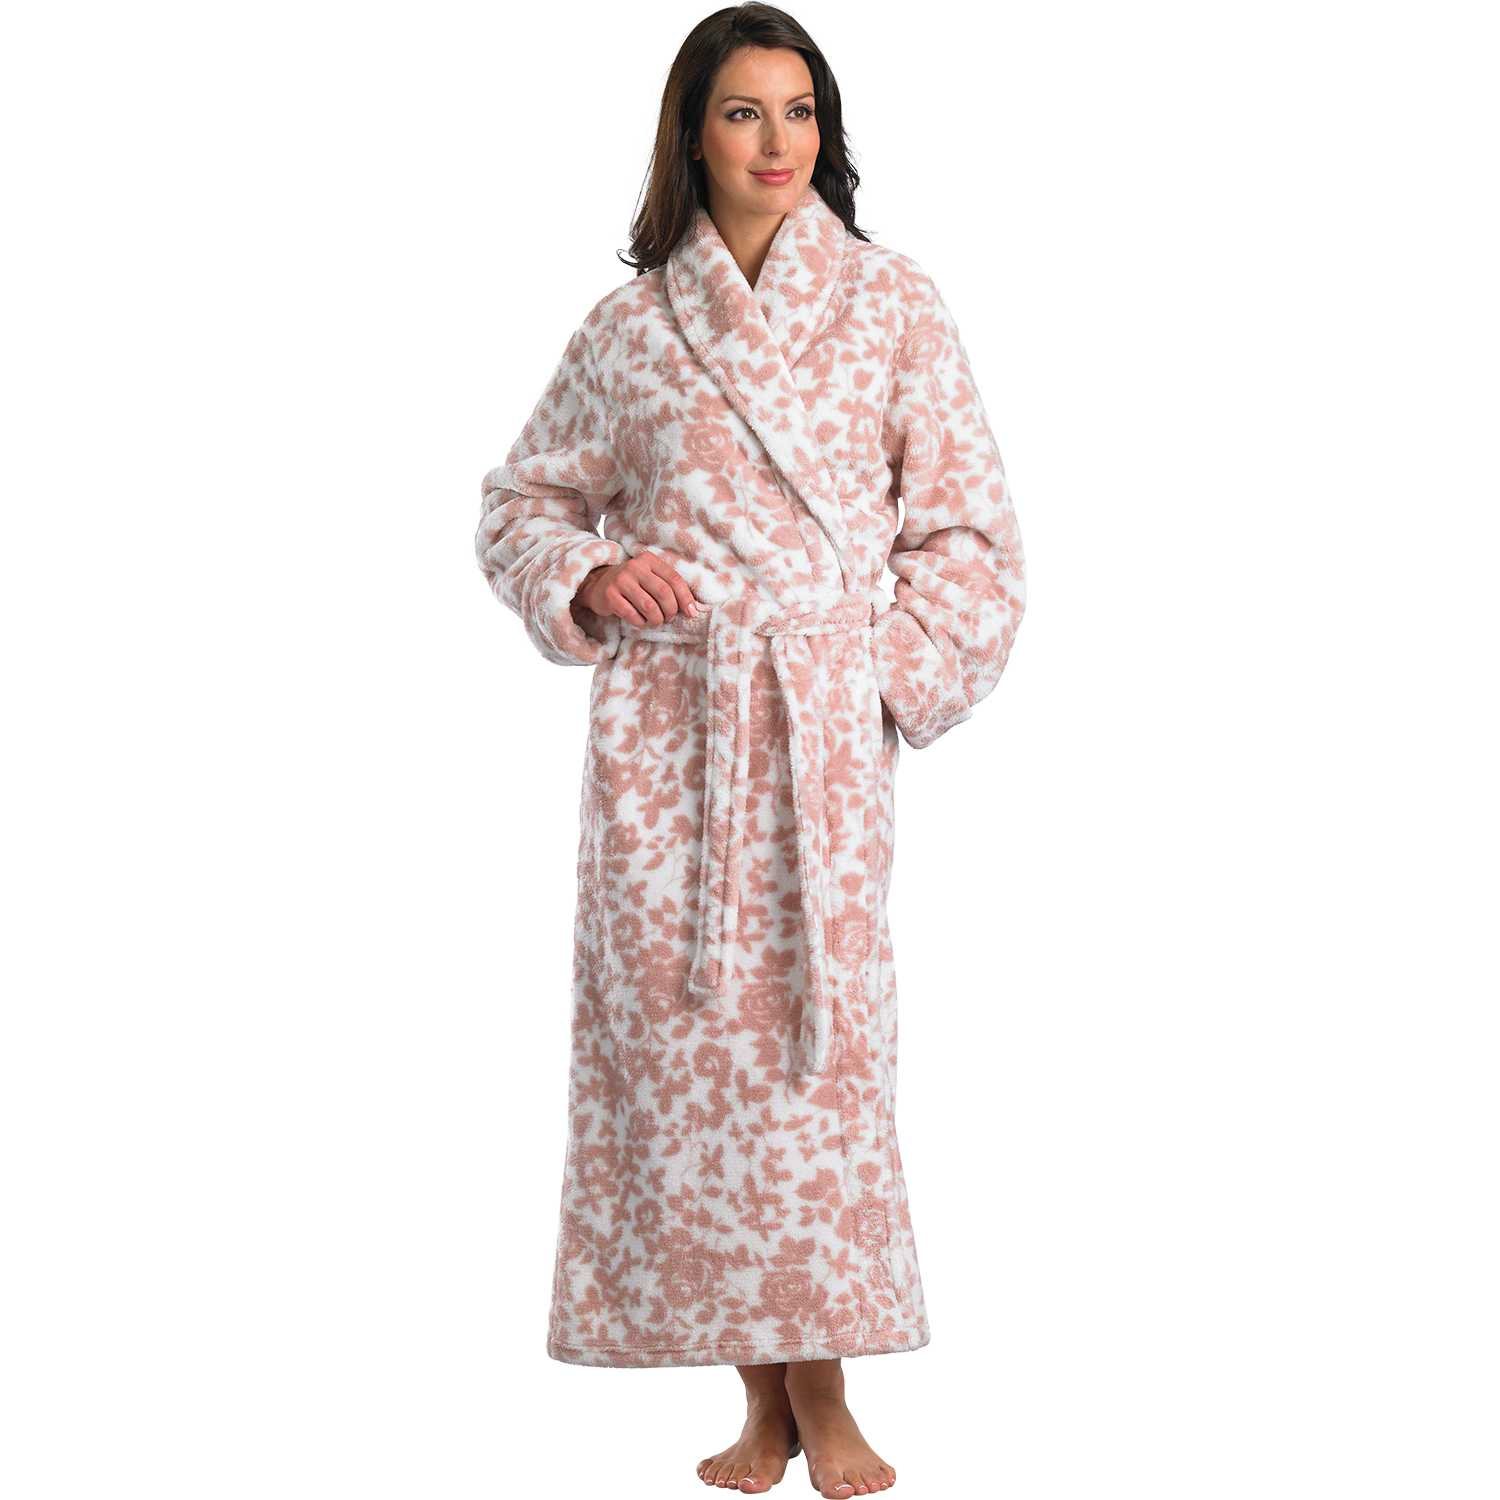 Womens Slenderella Bathrobe Ladies Floral Pattern Soft Fleece Long ...